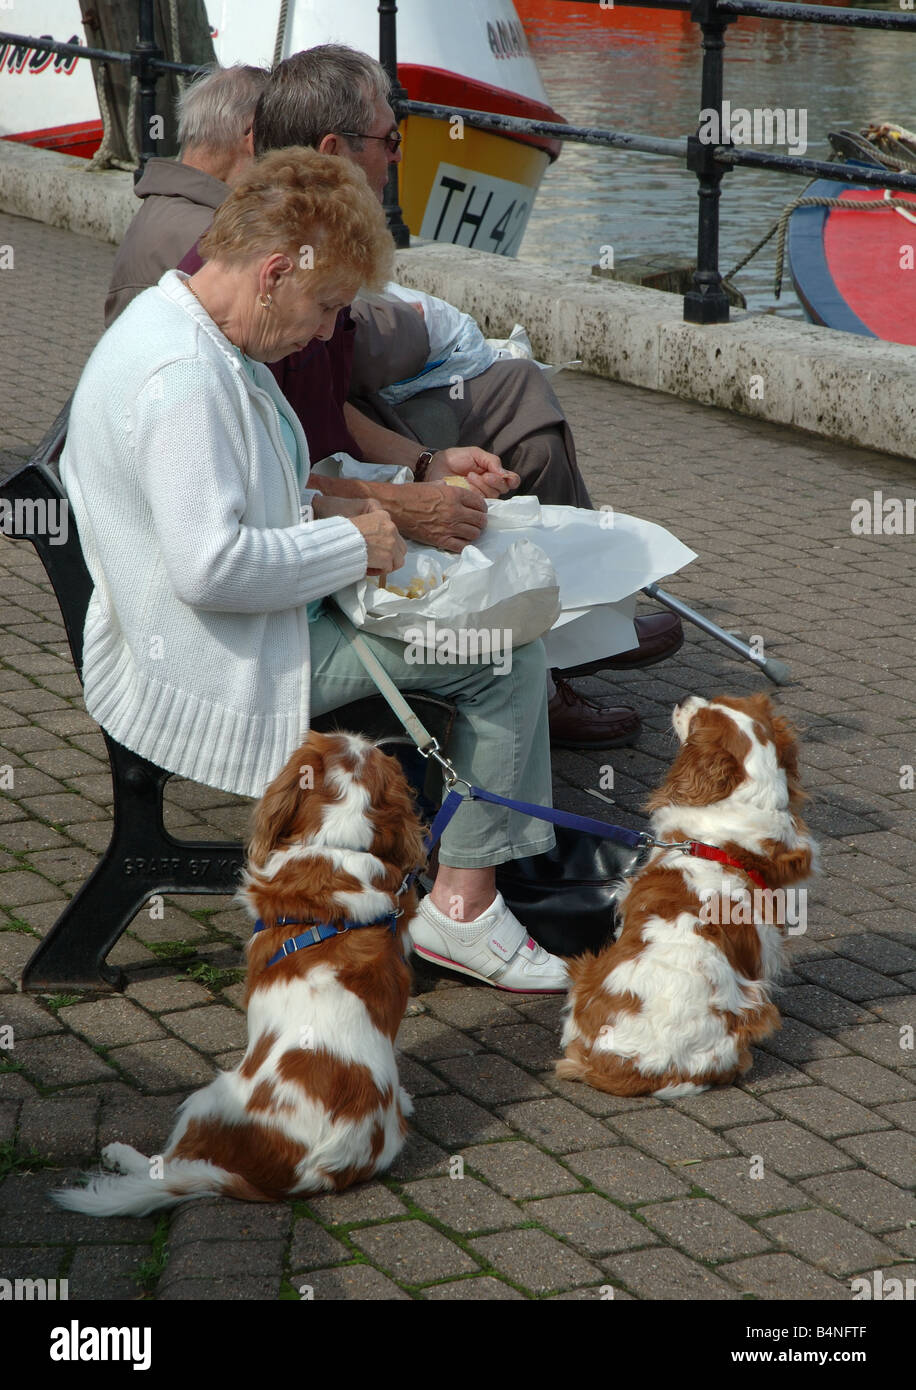 woman eating fish and chips, Weymouth, Dorset, England, UK - Stock Image